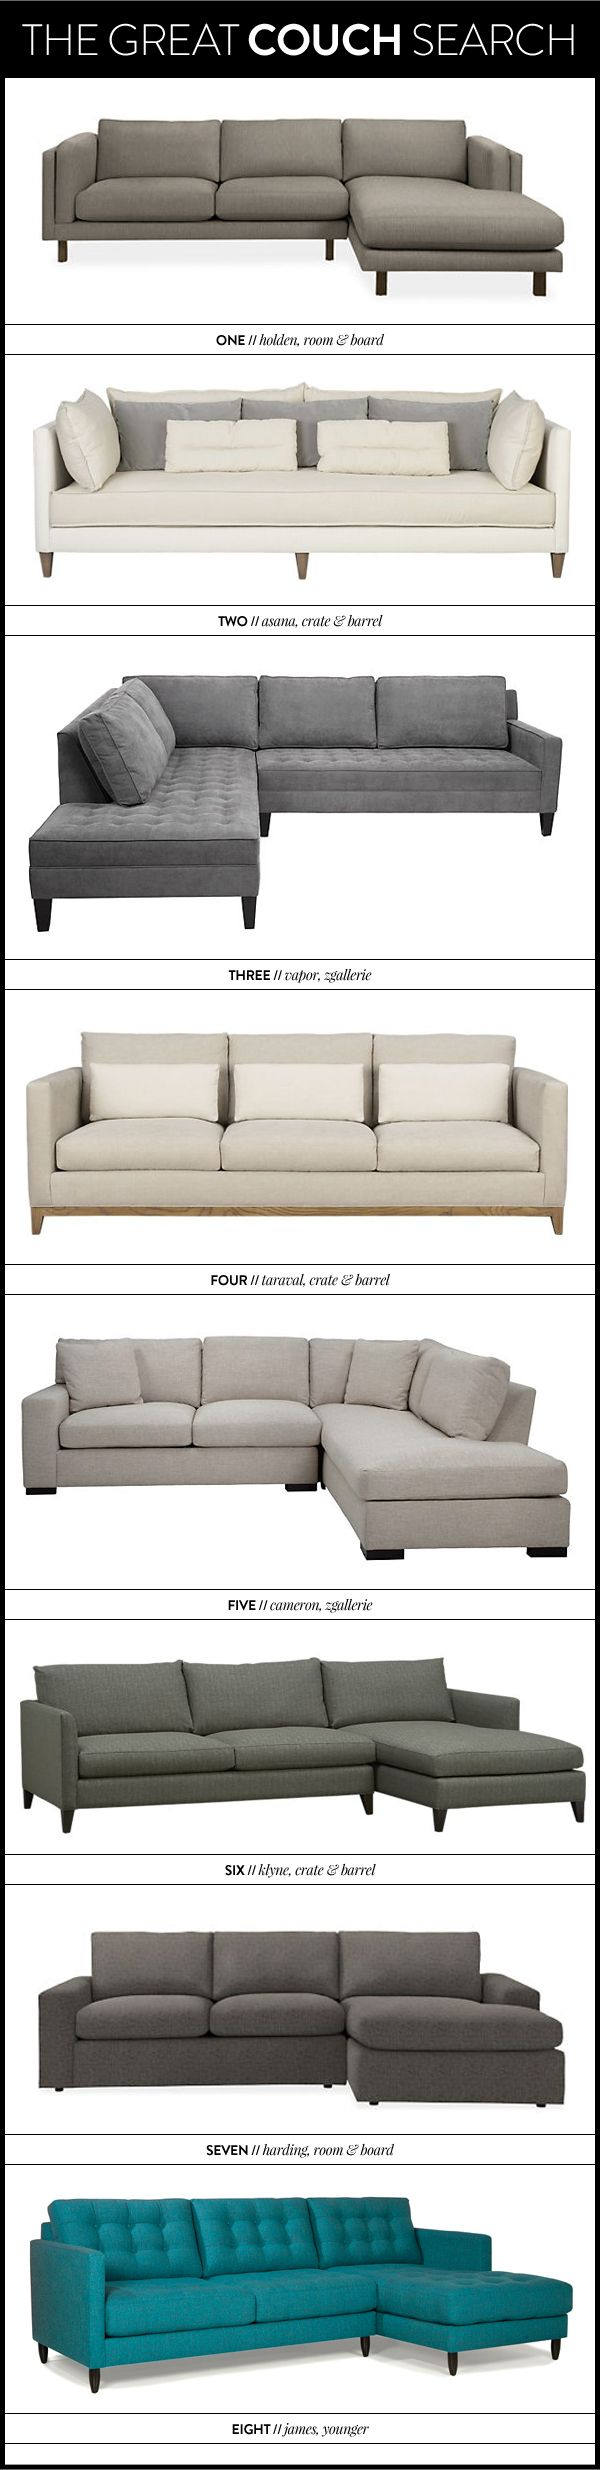 the great couch search — which one of these did we choose?